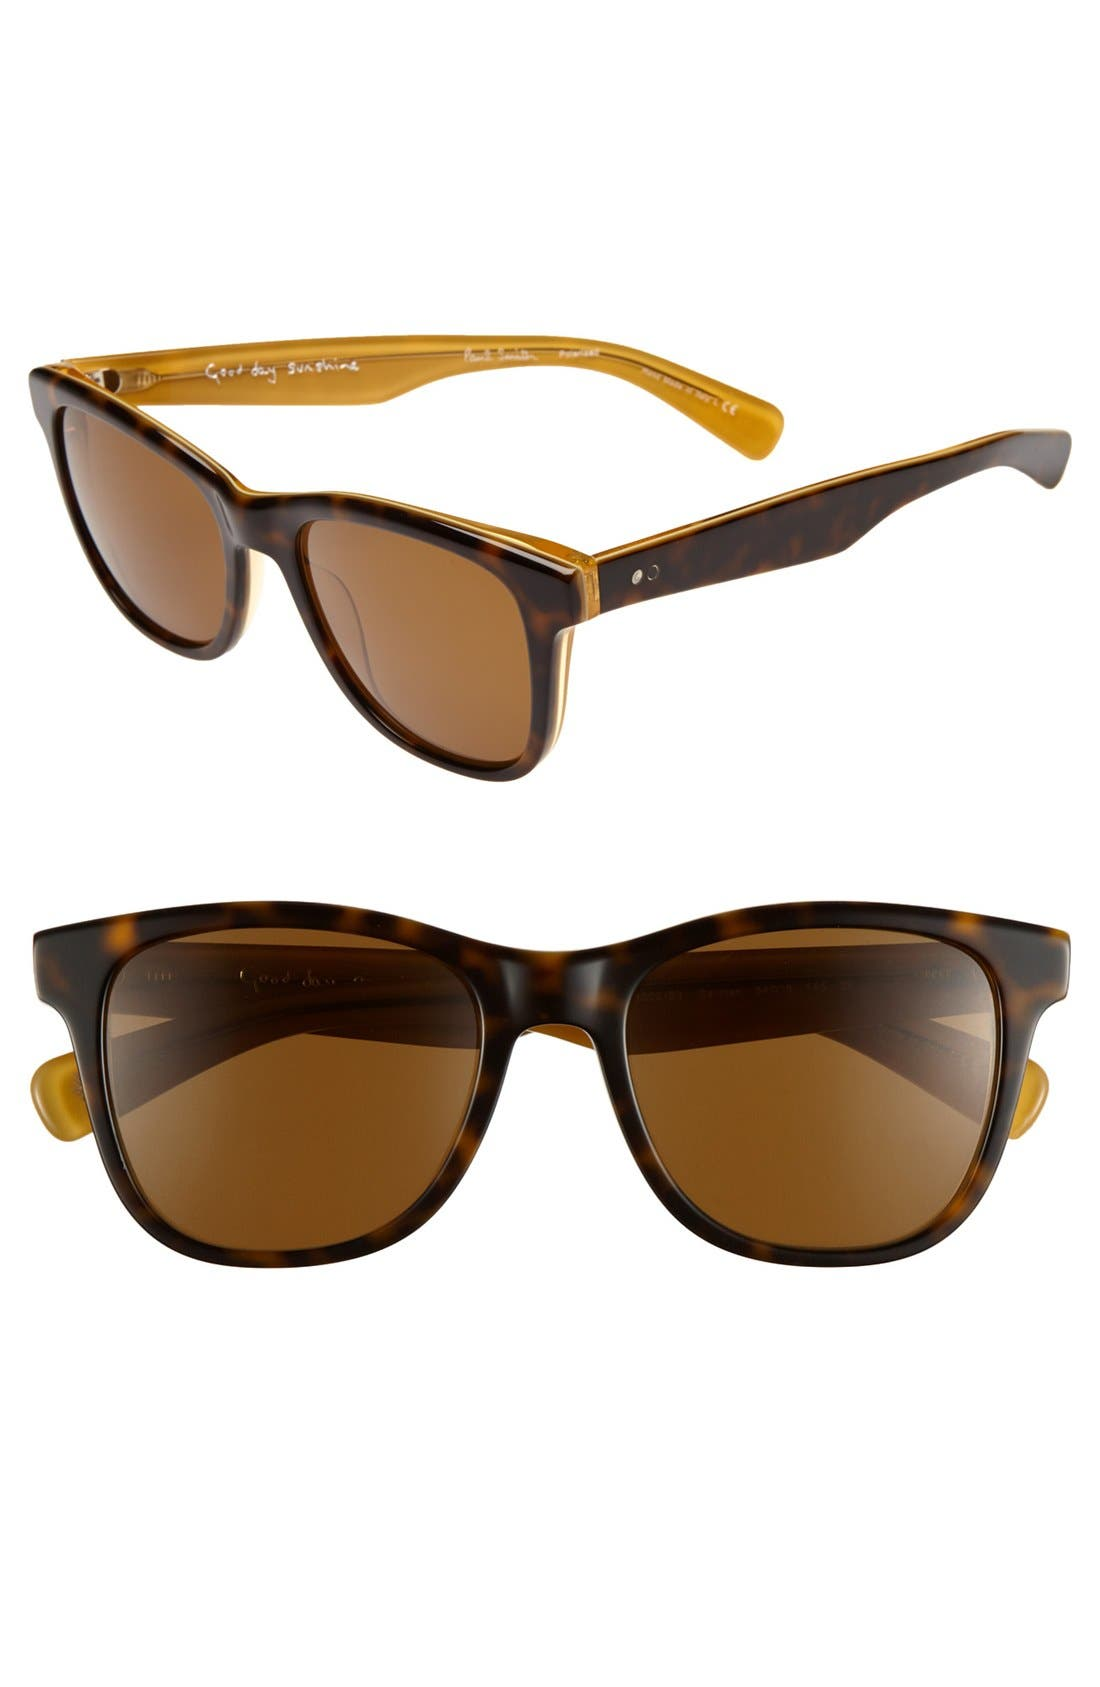 Alternate Image 1 Selected - Paul Smith 'Berman' 54mm Polarized Sunglasses